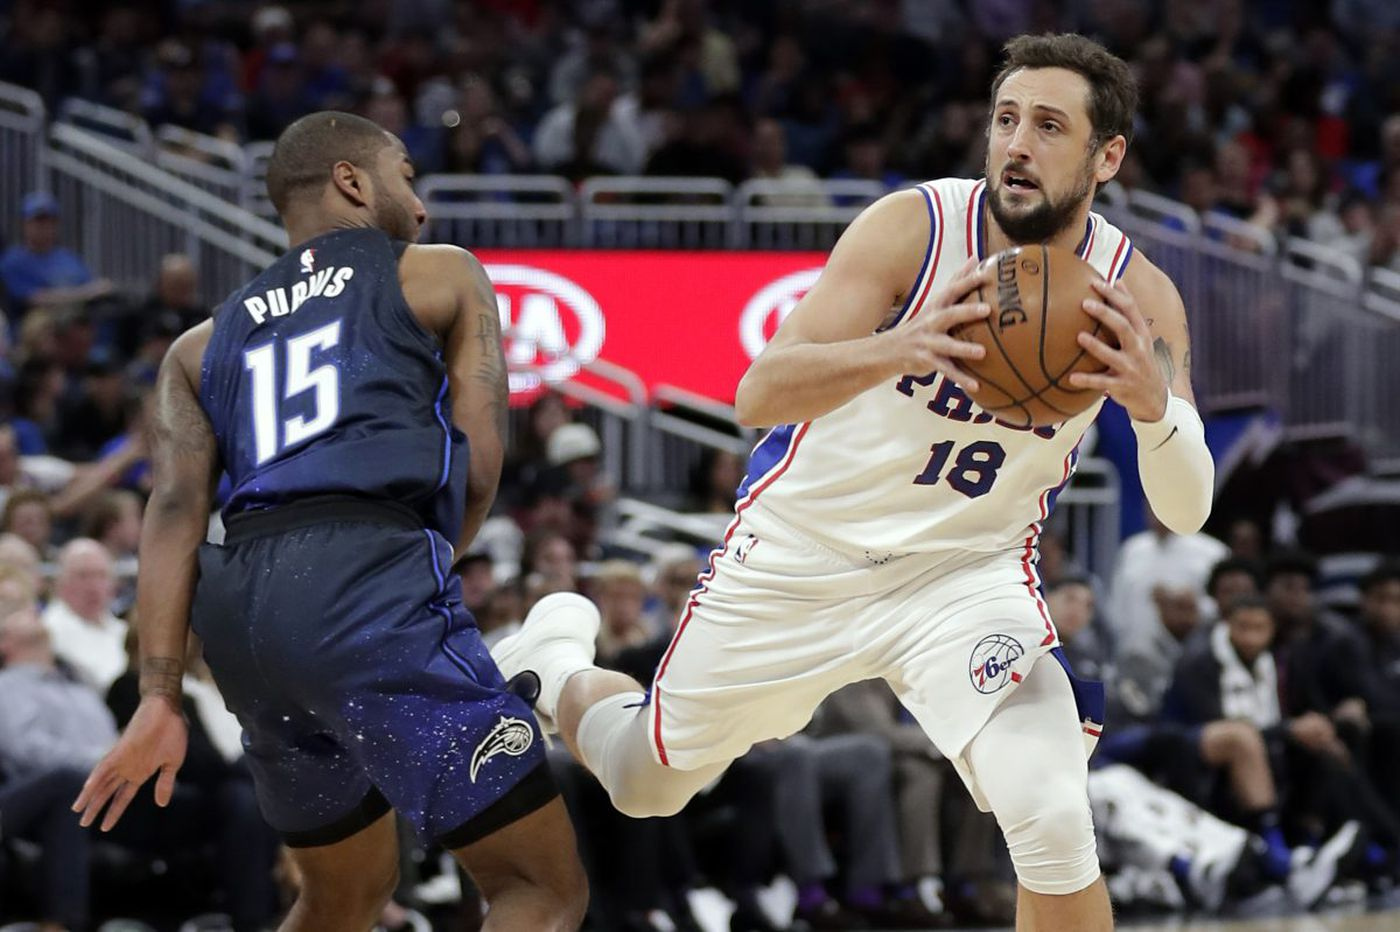 Sixers-Heat observations, 'best' and 'worst' awards: Marco Belinelli's presence, Josh Richardson's struggles and Philly's 3-point clinic